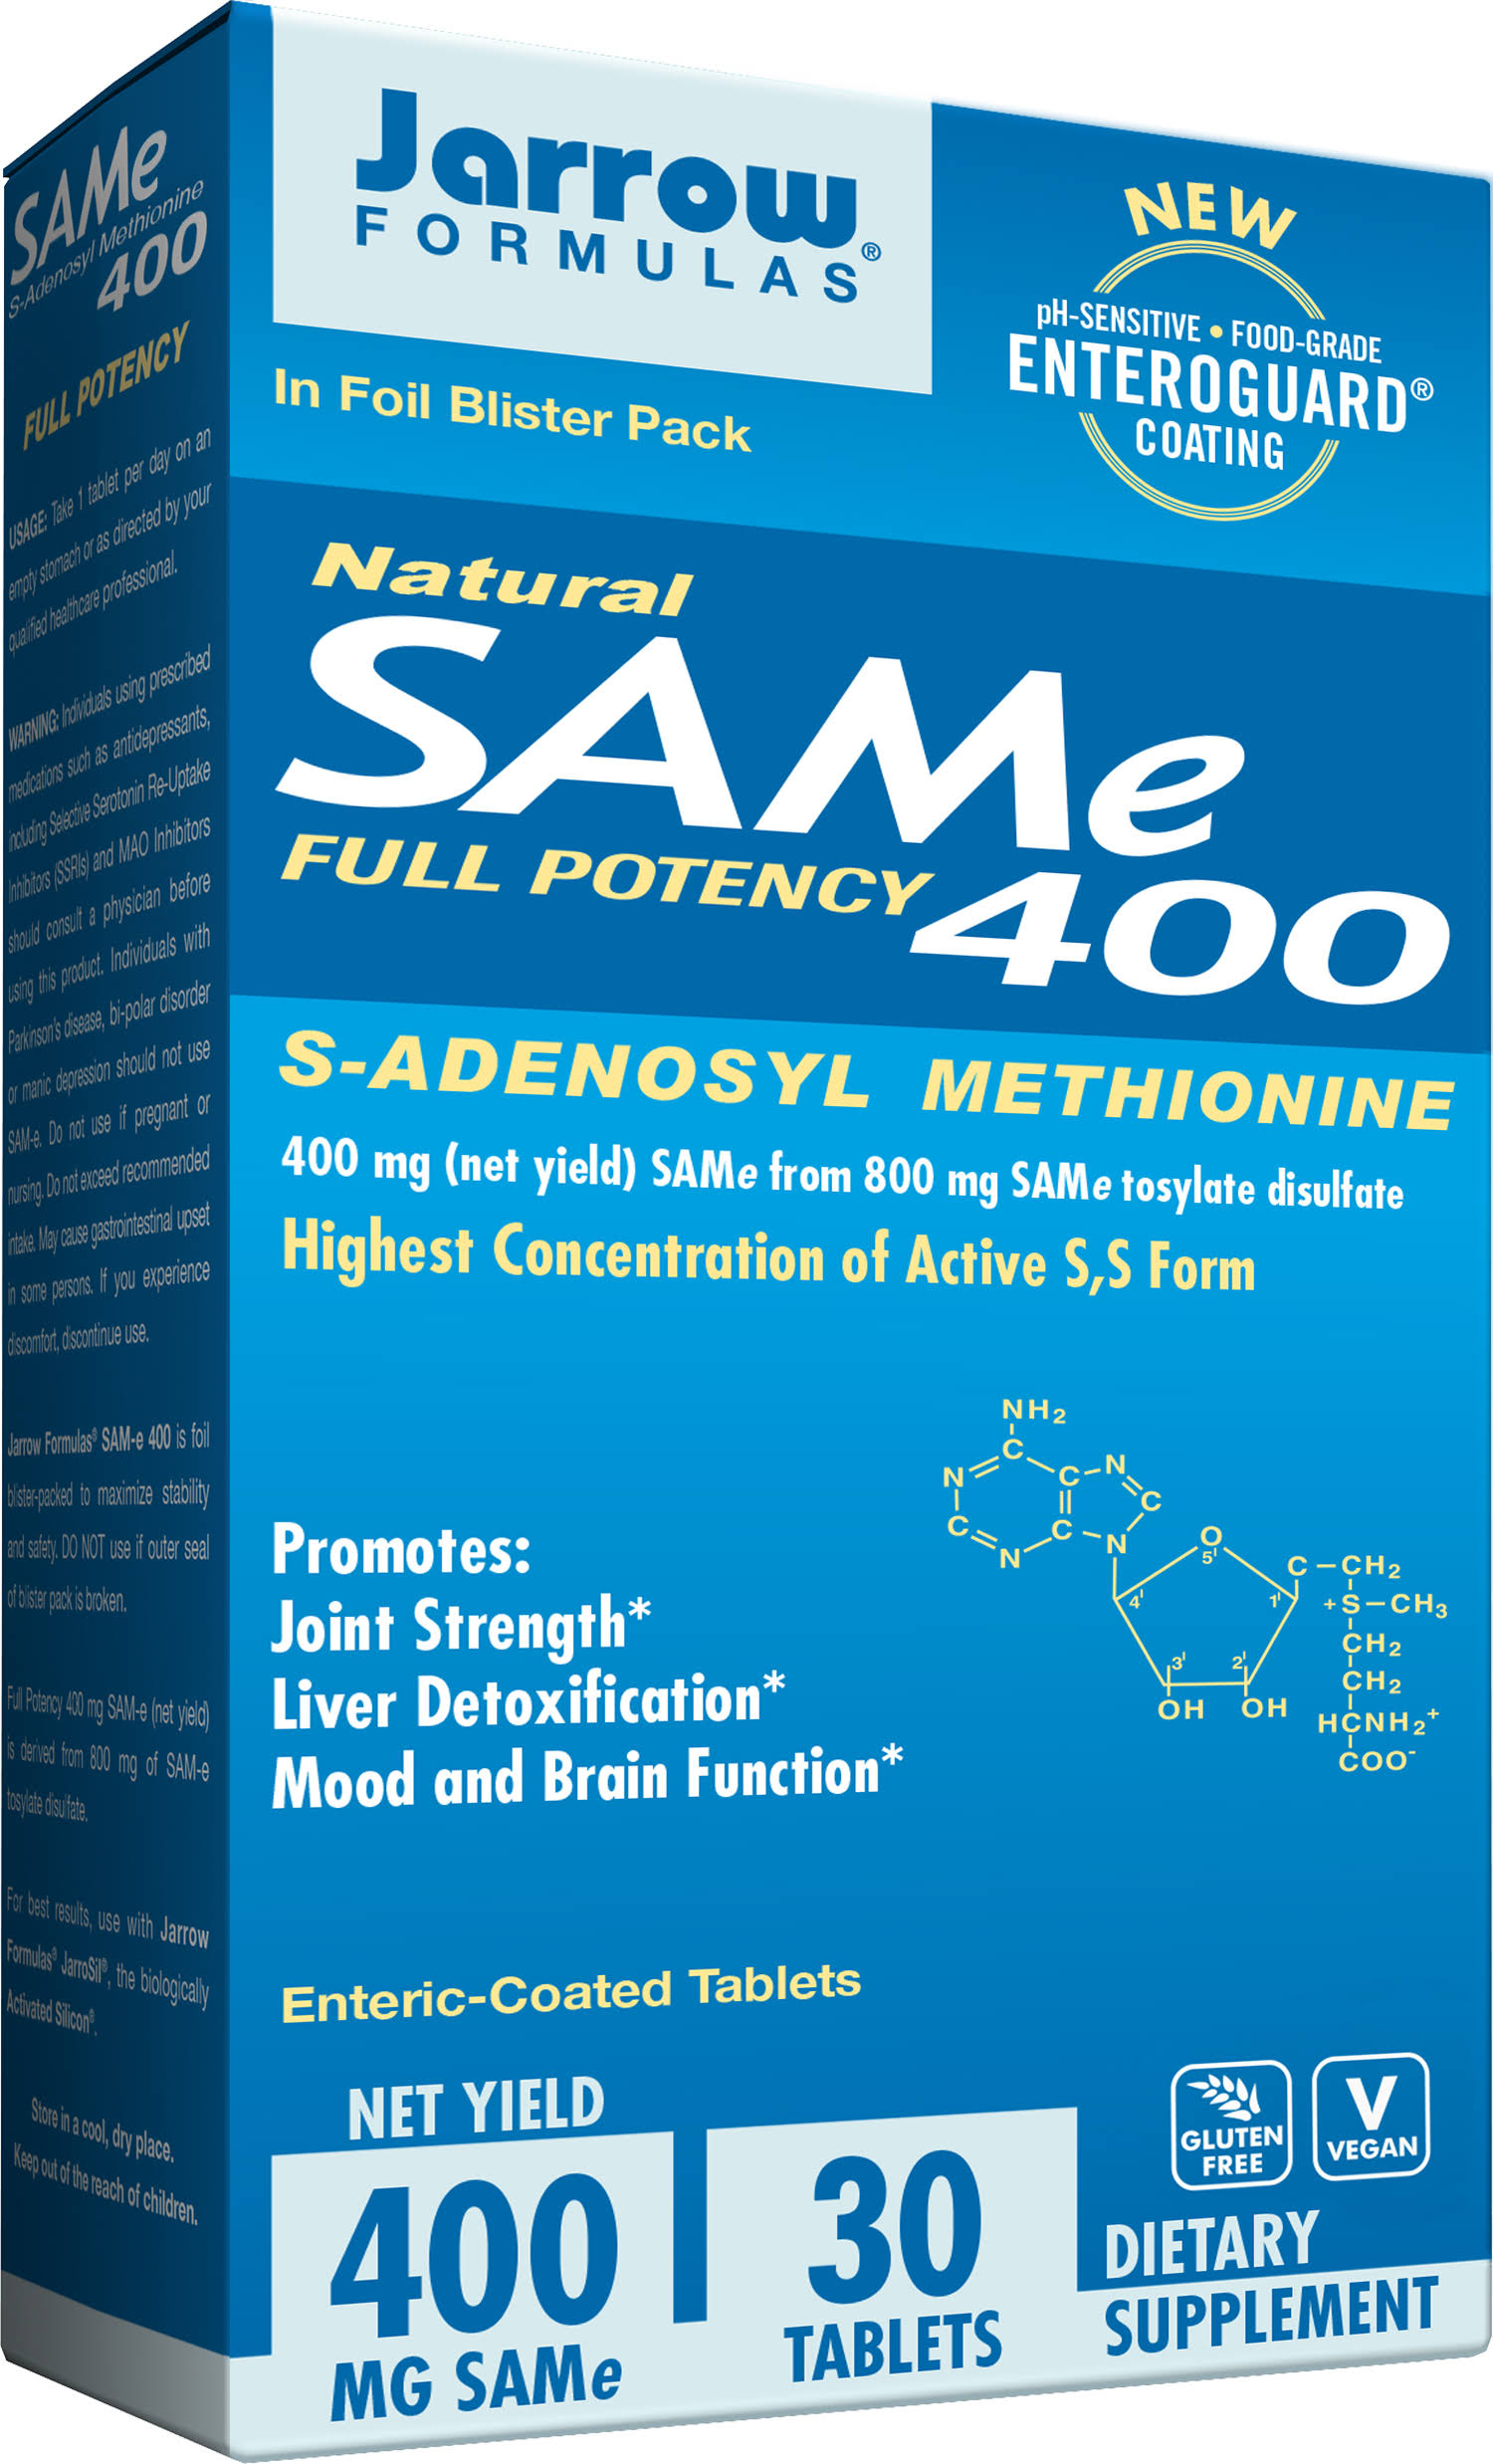 Jarrow Formulas Sam-e Full Potency 400 S-Adenosyl Methionine - 30 Tablets